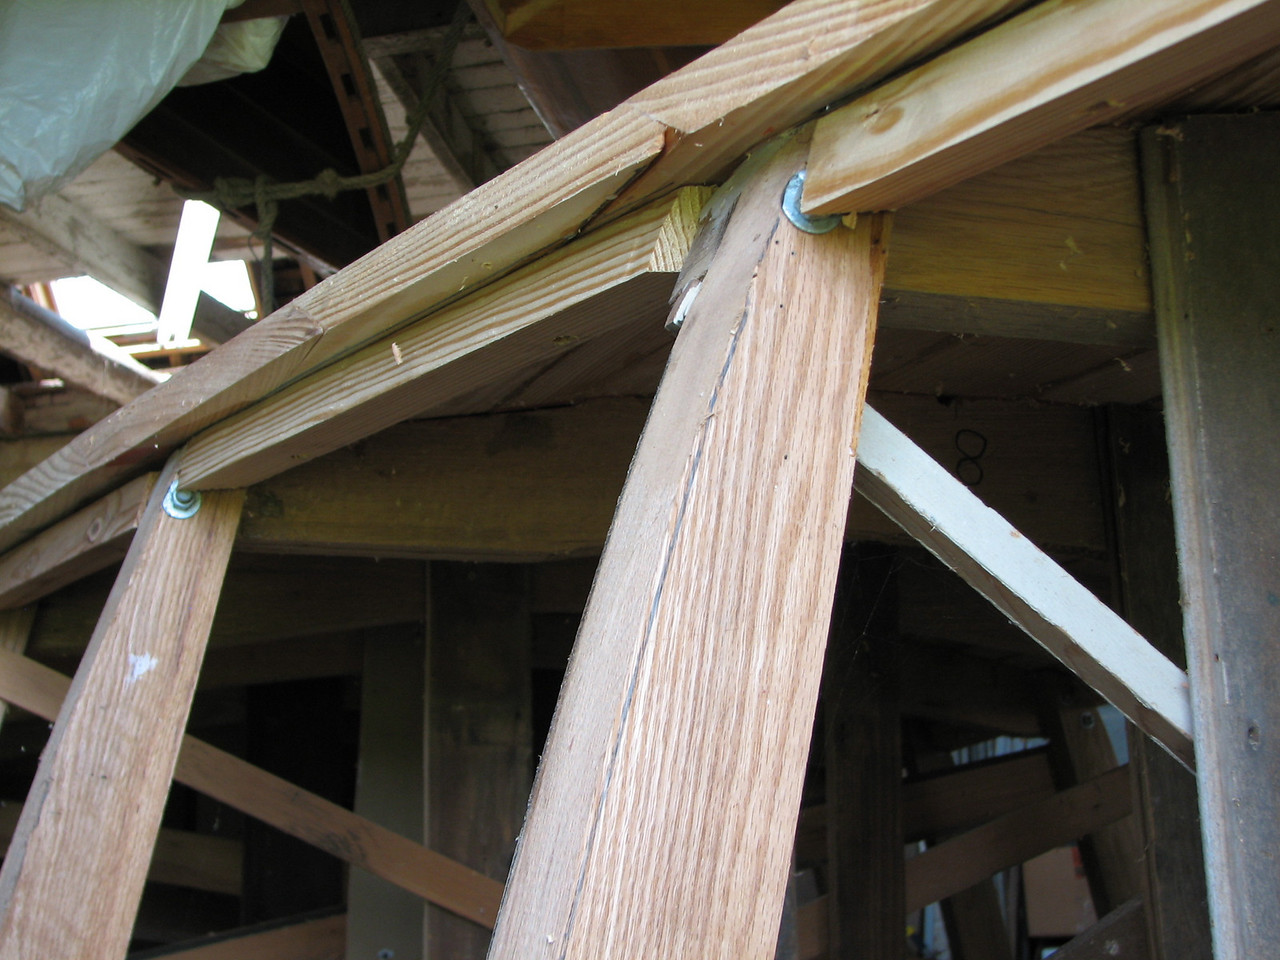 The chine log sections are fitted between the frames where the bottom planking and side planking join (the chine).  The cedar side plank is screwed and glued to the chine log for a secure tight fit.